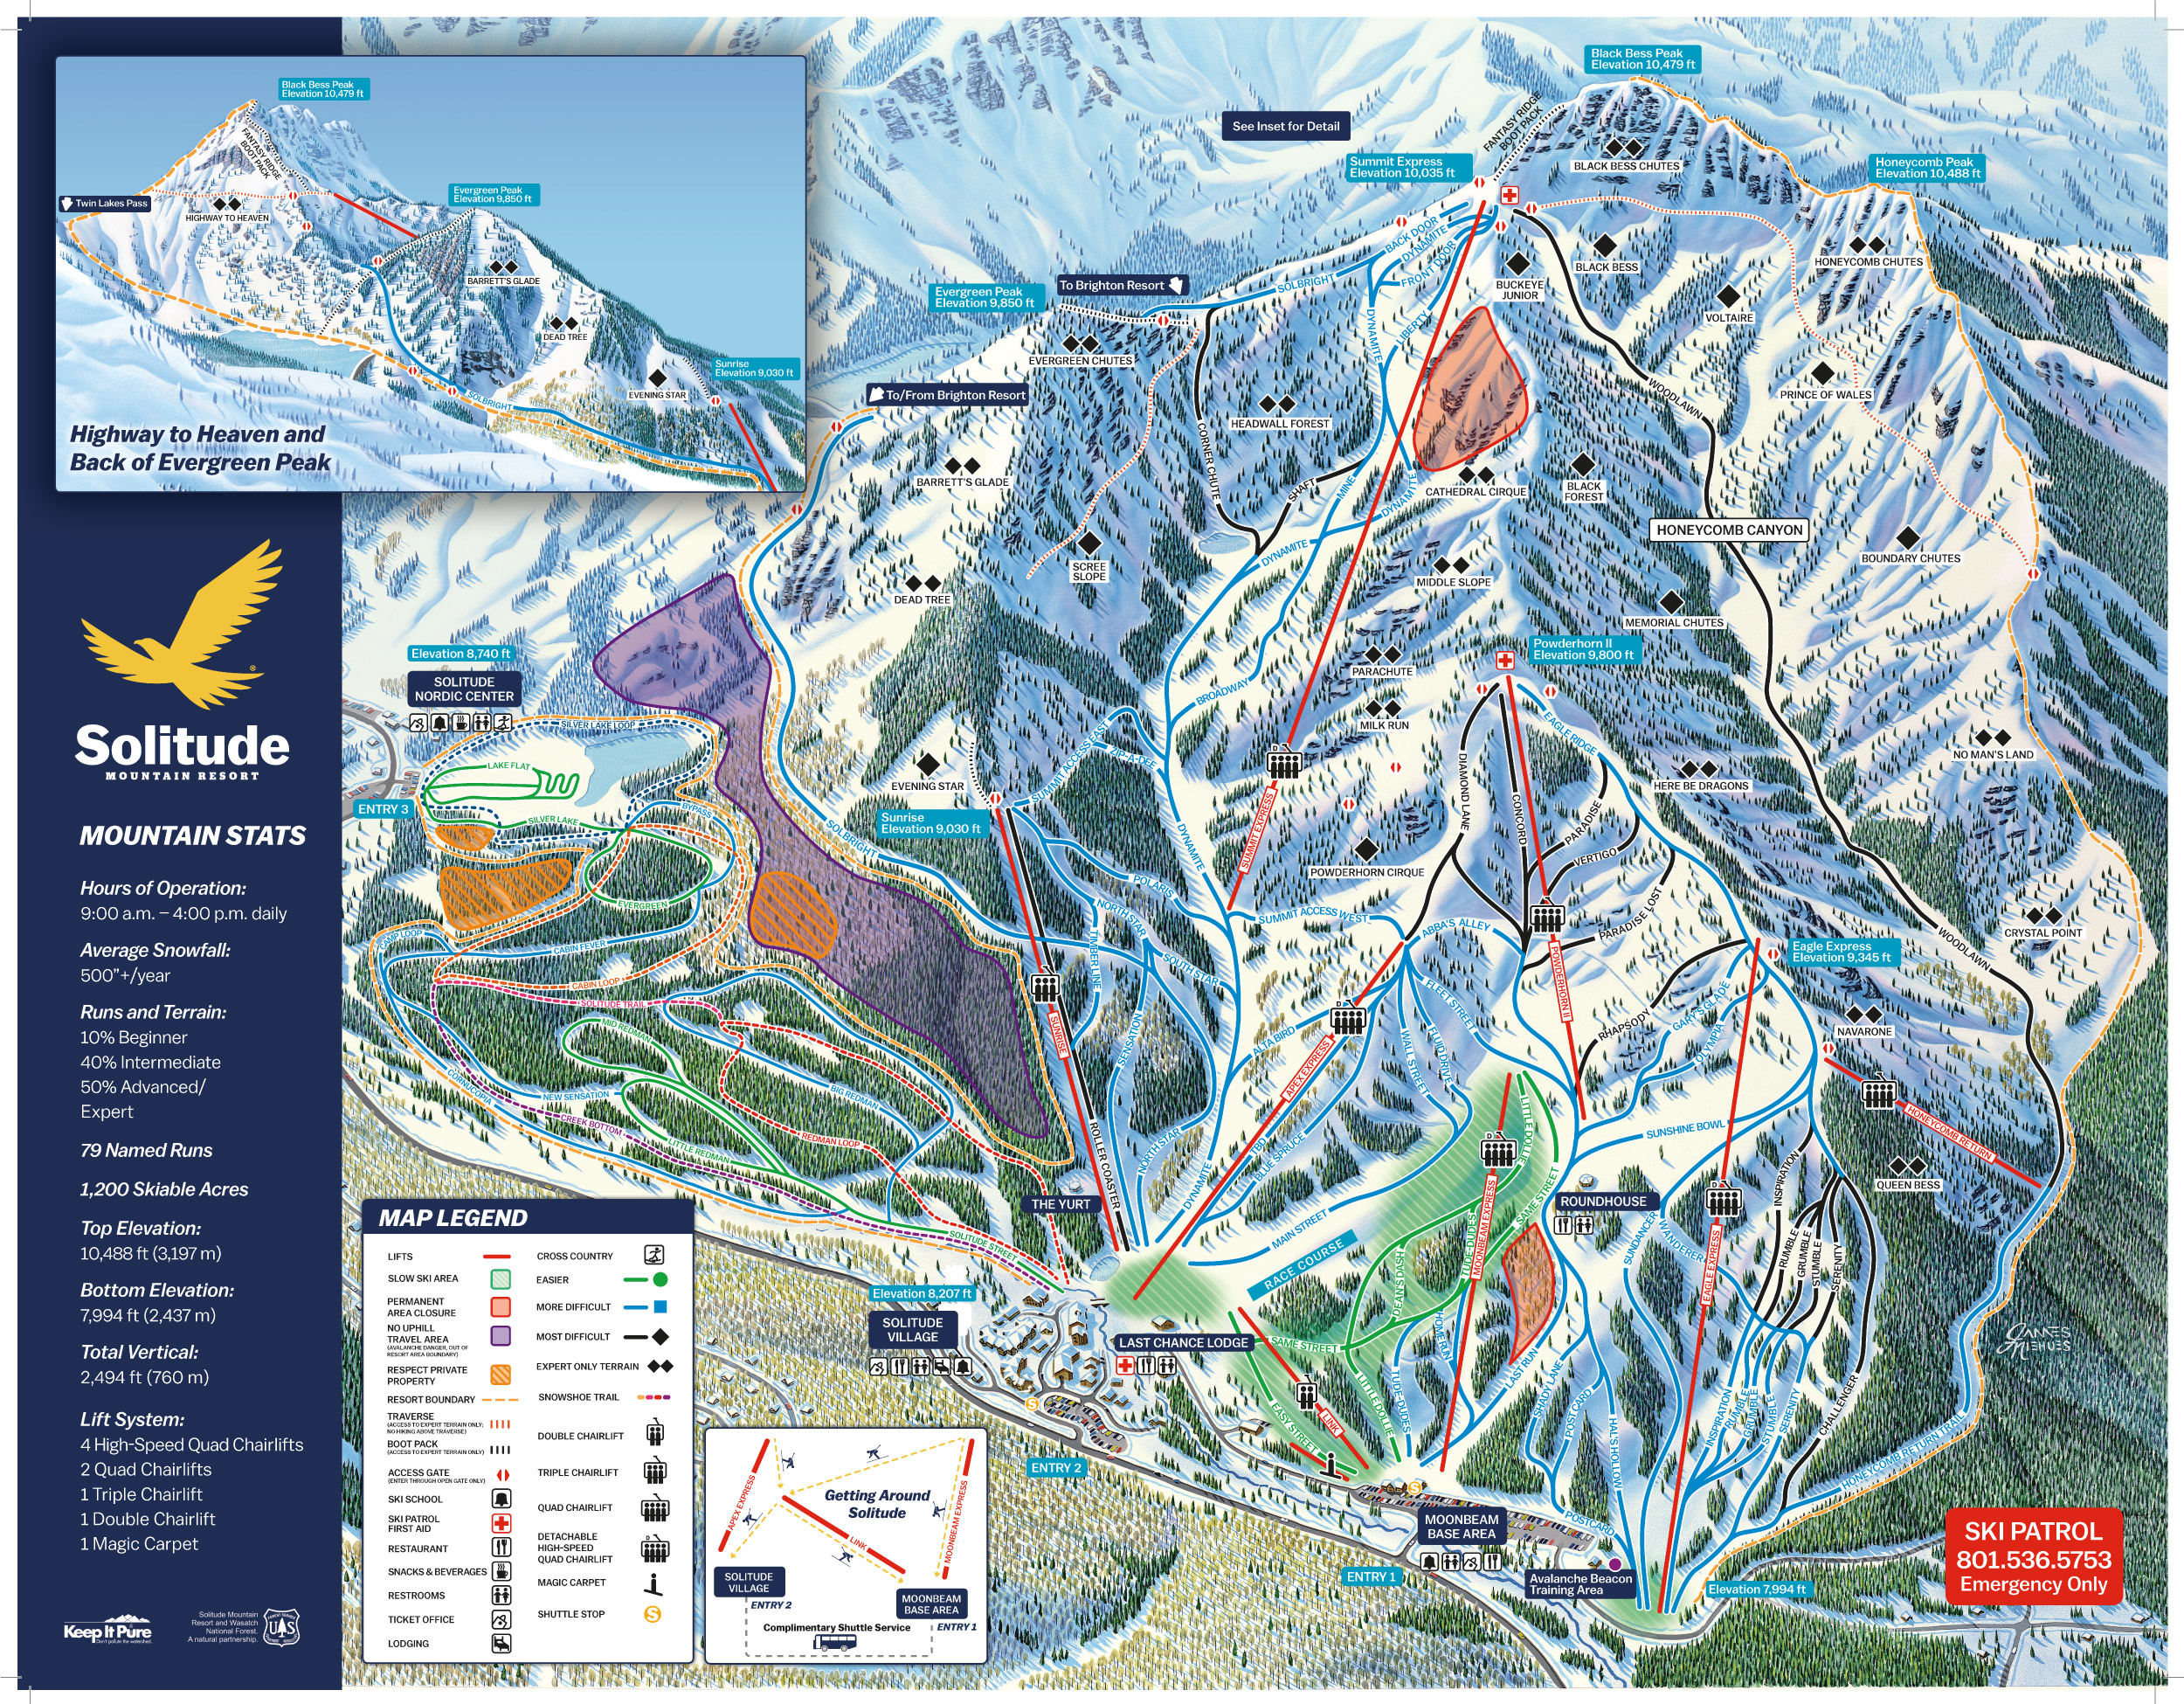 Trail Maps For Each Of Utahs Ski Resort Ski Utah - Brighton utah us map